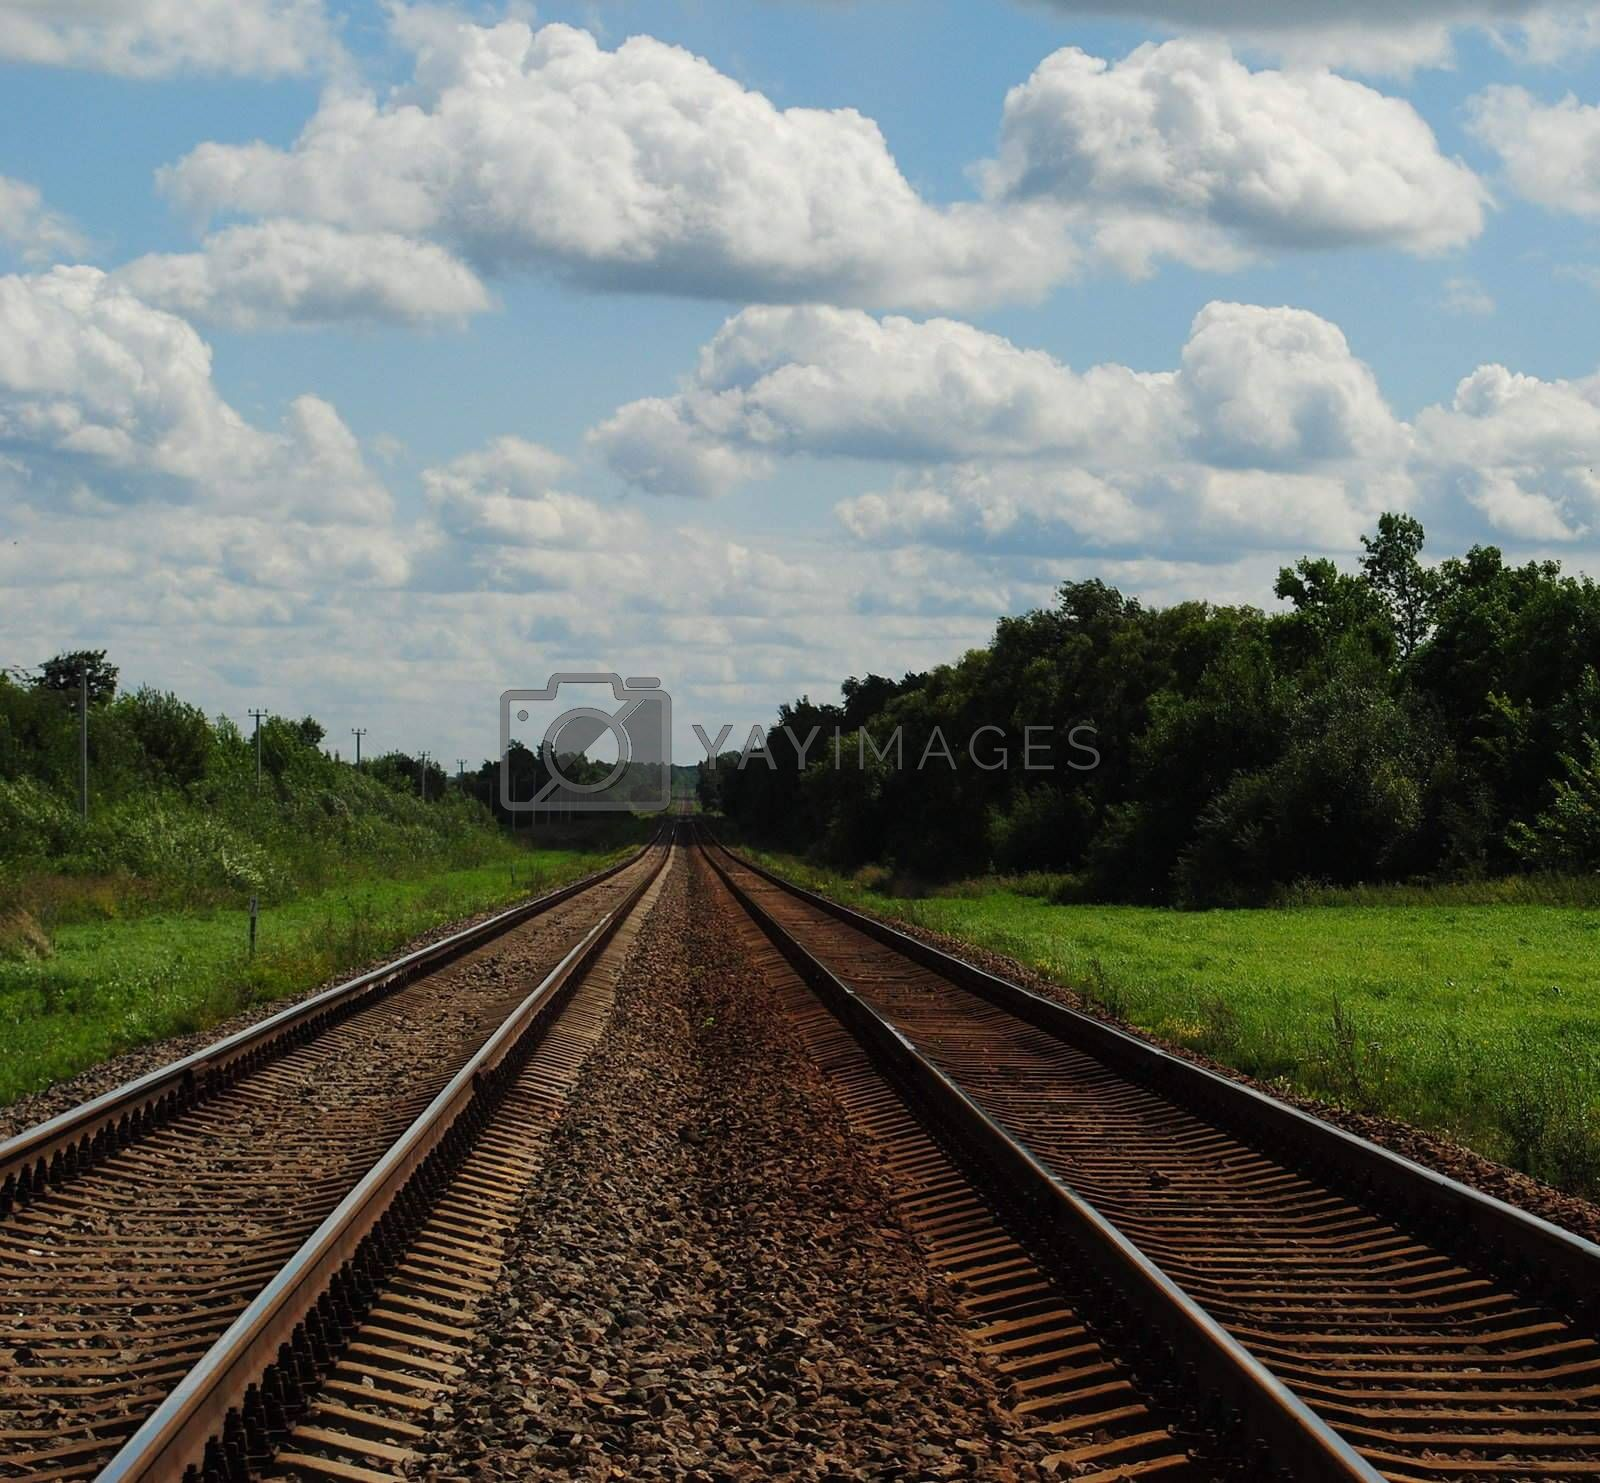 a colourful landscape with a railway to somewhere,